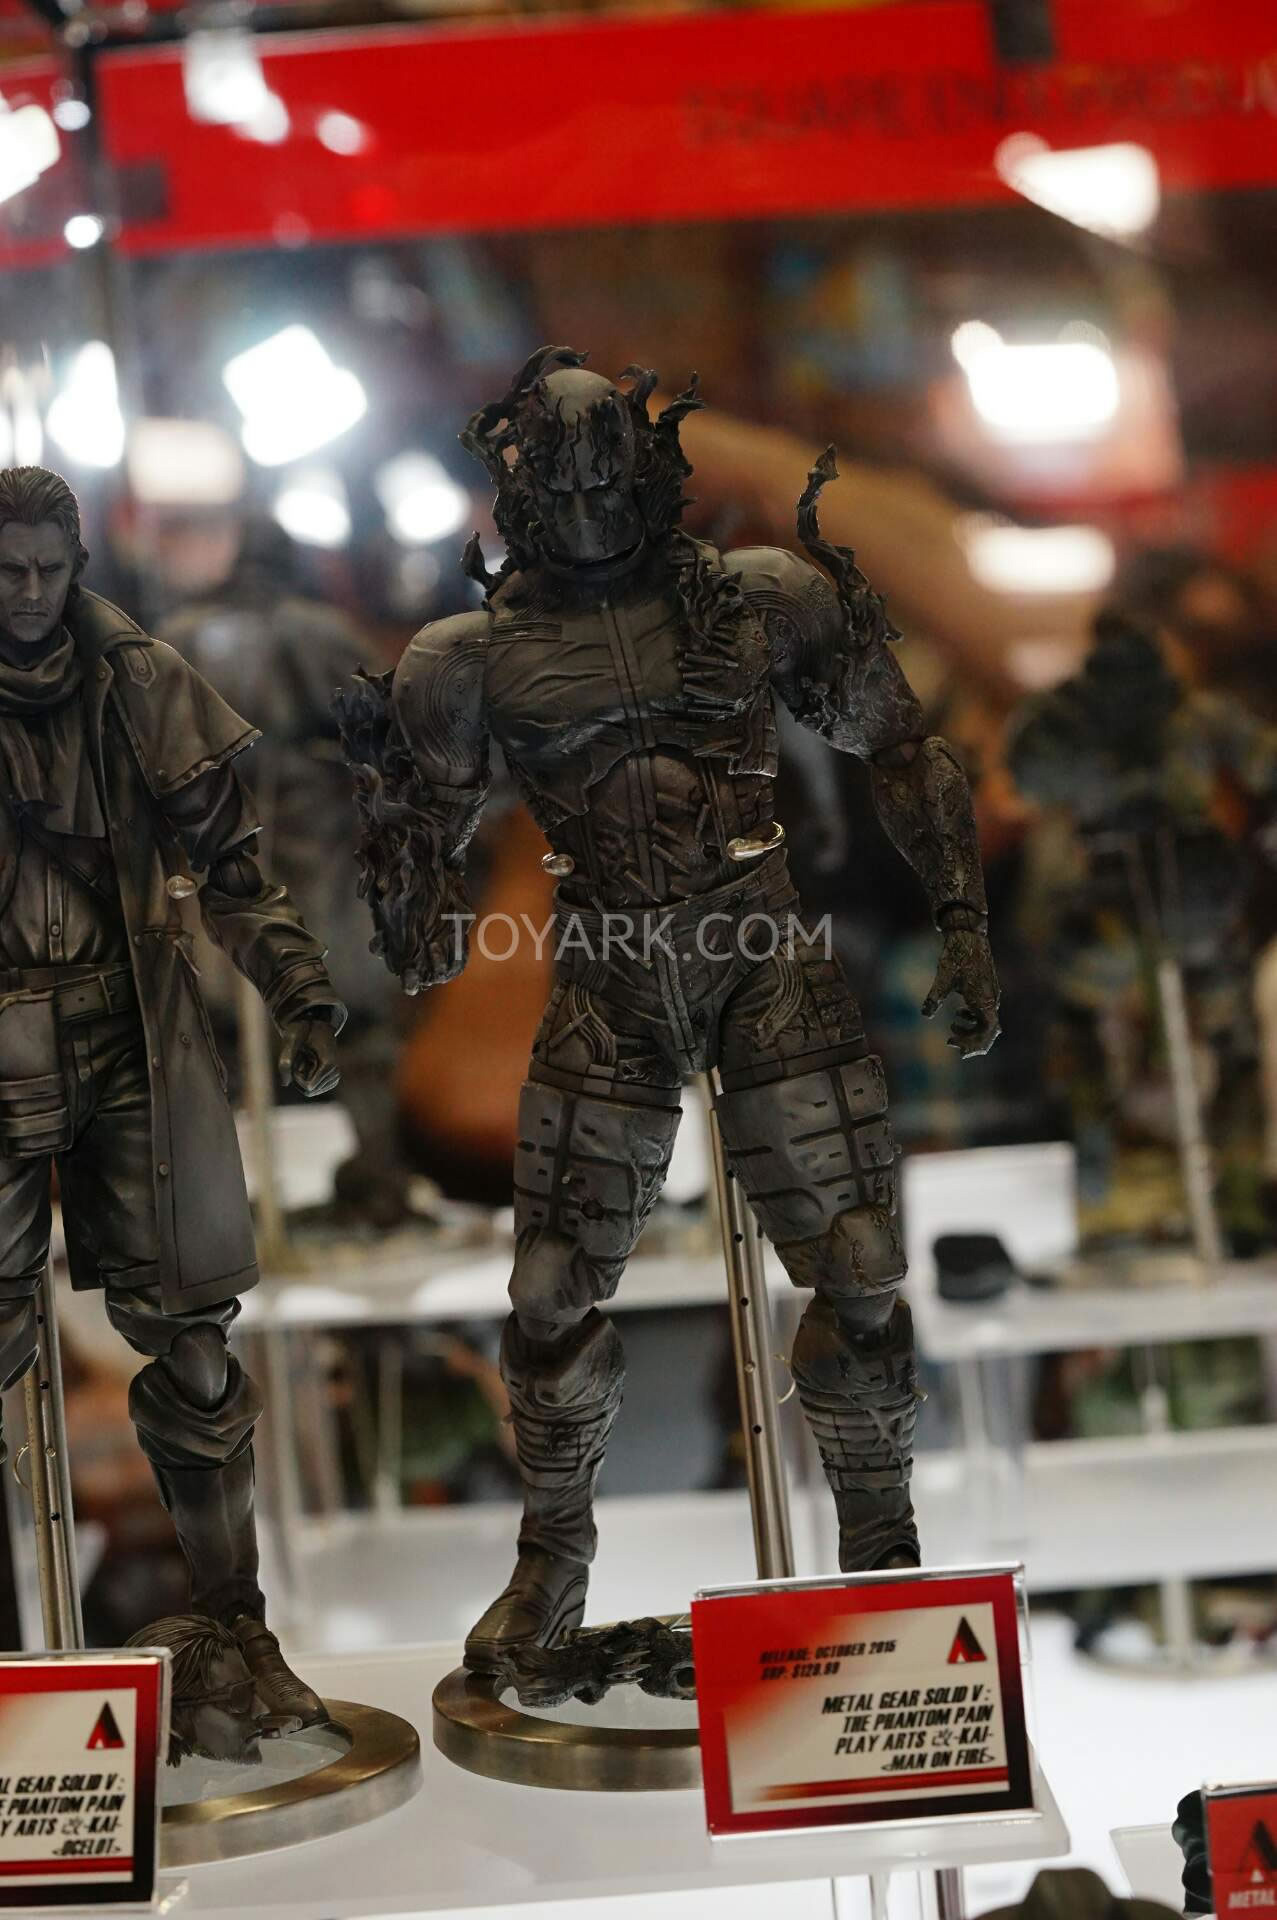 SDCC-MGSV-TPP-Figure-Man-on-Fire